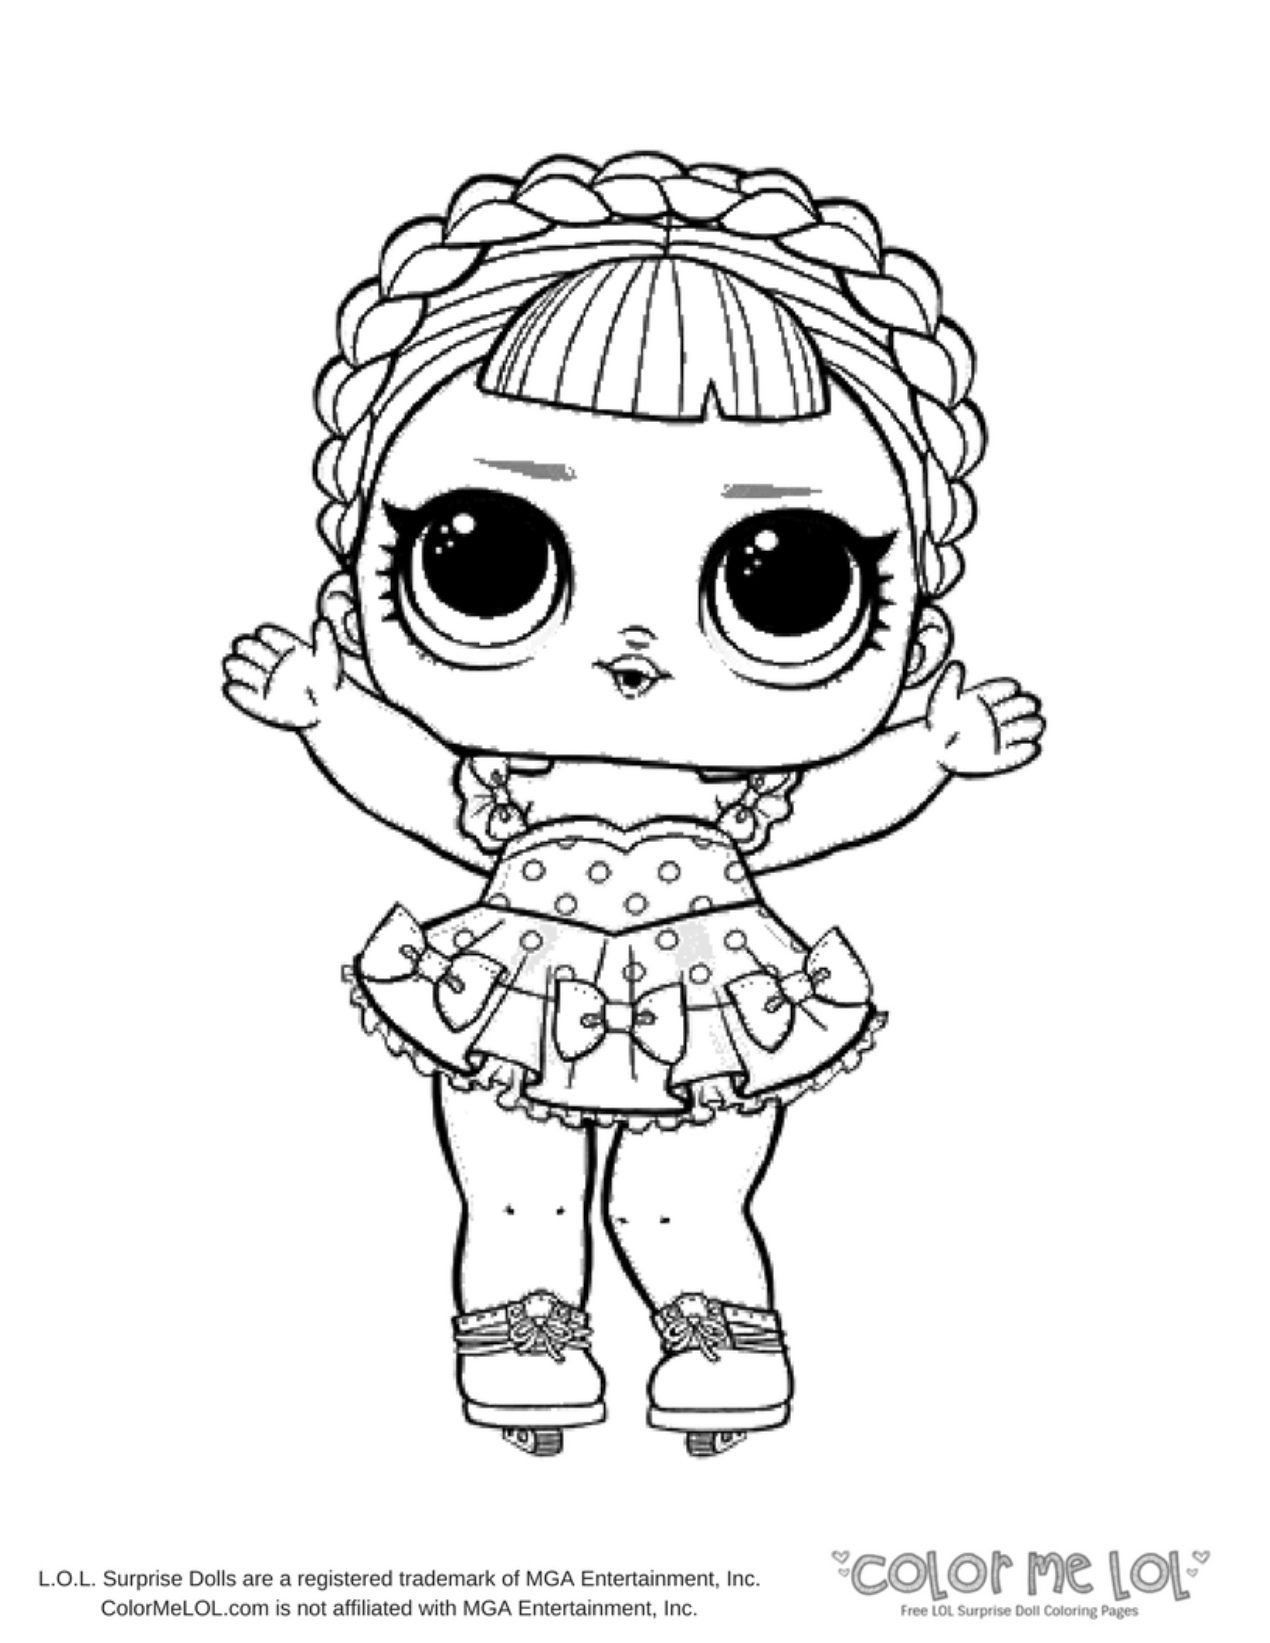 Giraffe Mandala Coloring Pages Coloring Pages Lol Surprise Doll To Color Colored Coloring Mermaid Coloring Pages Baby Coloring Pages Mandala Coloring Pages